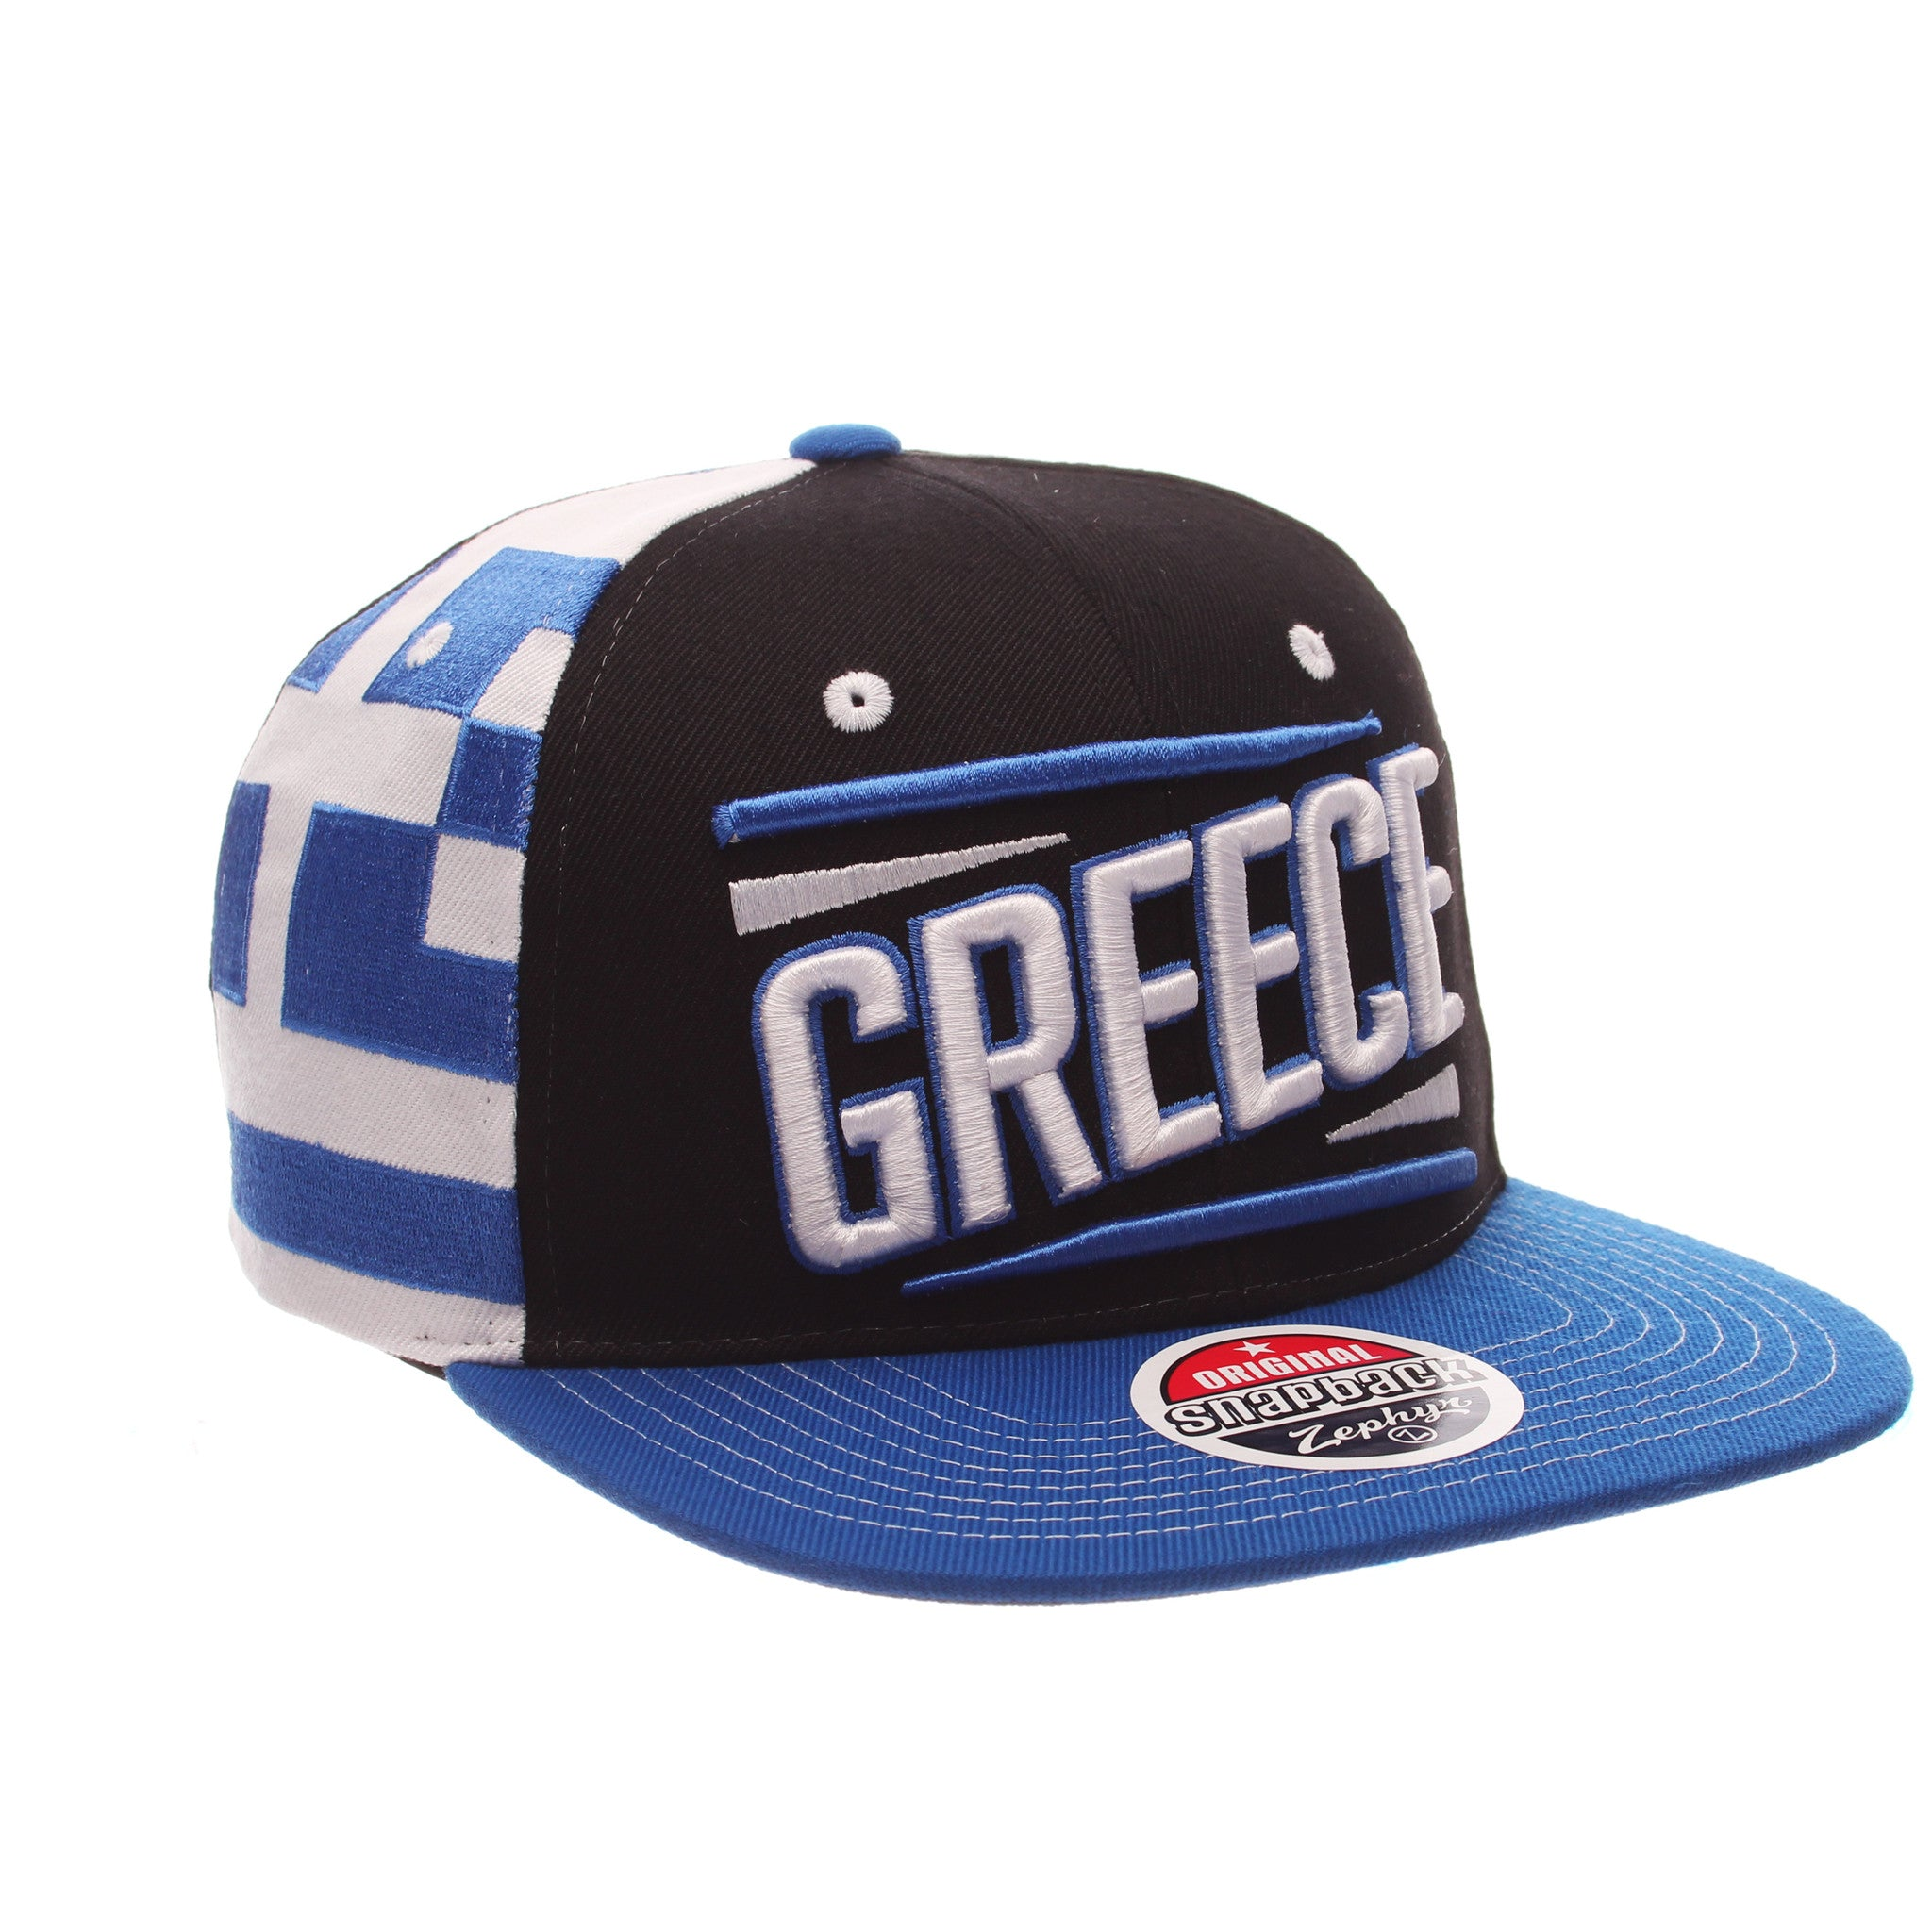 COUNTRY Victory 32/5 (High) (GREECE W/LINES) Varied Colors Varied Panels Adjustable hats by Zephyr